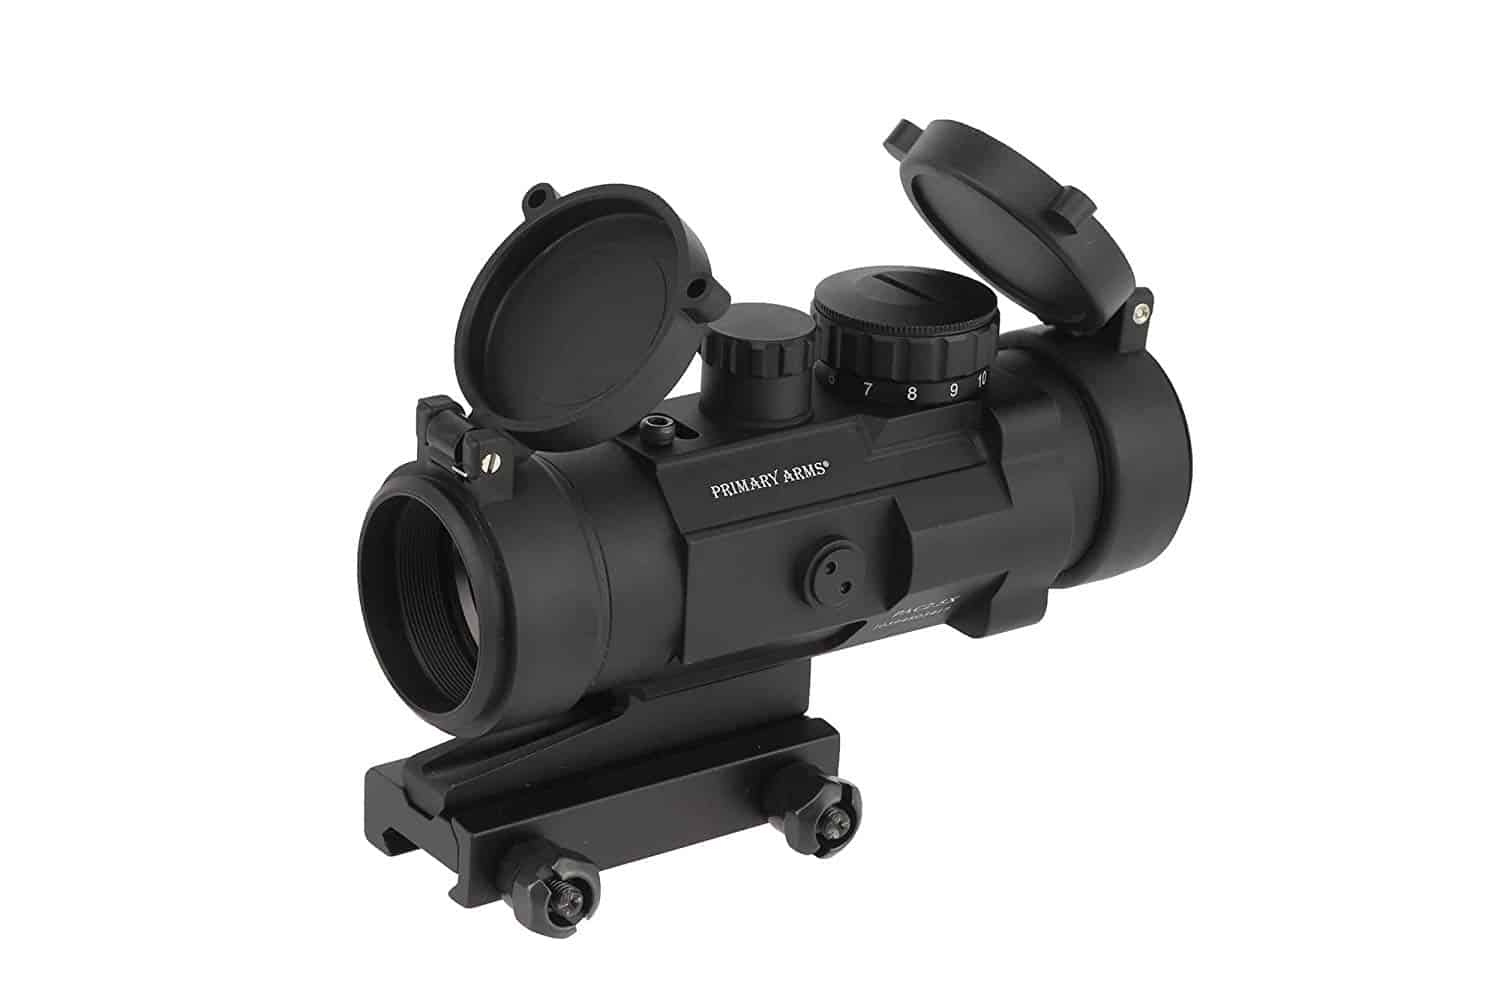 Primary Arms SLxP2.5 Compact 2.5x32 Prism Scope